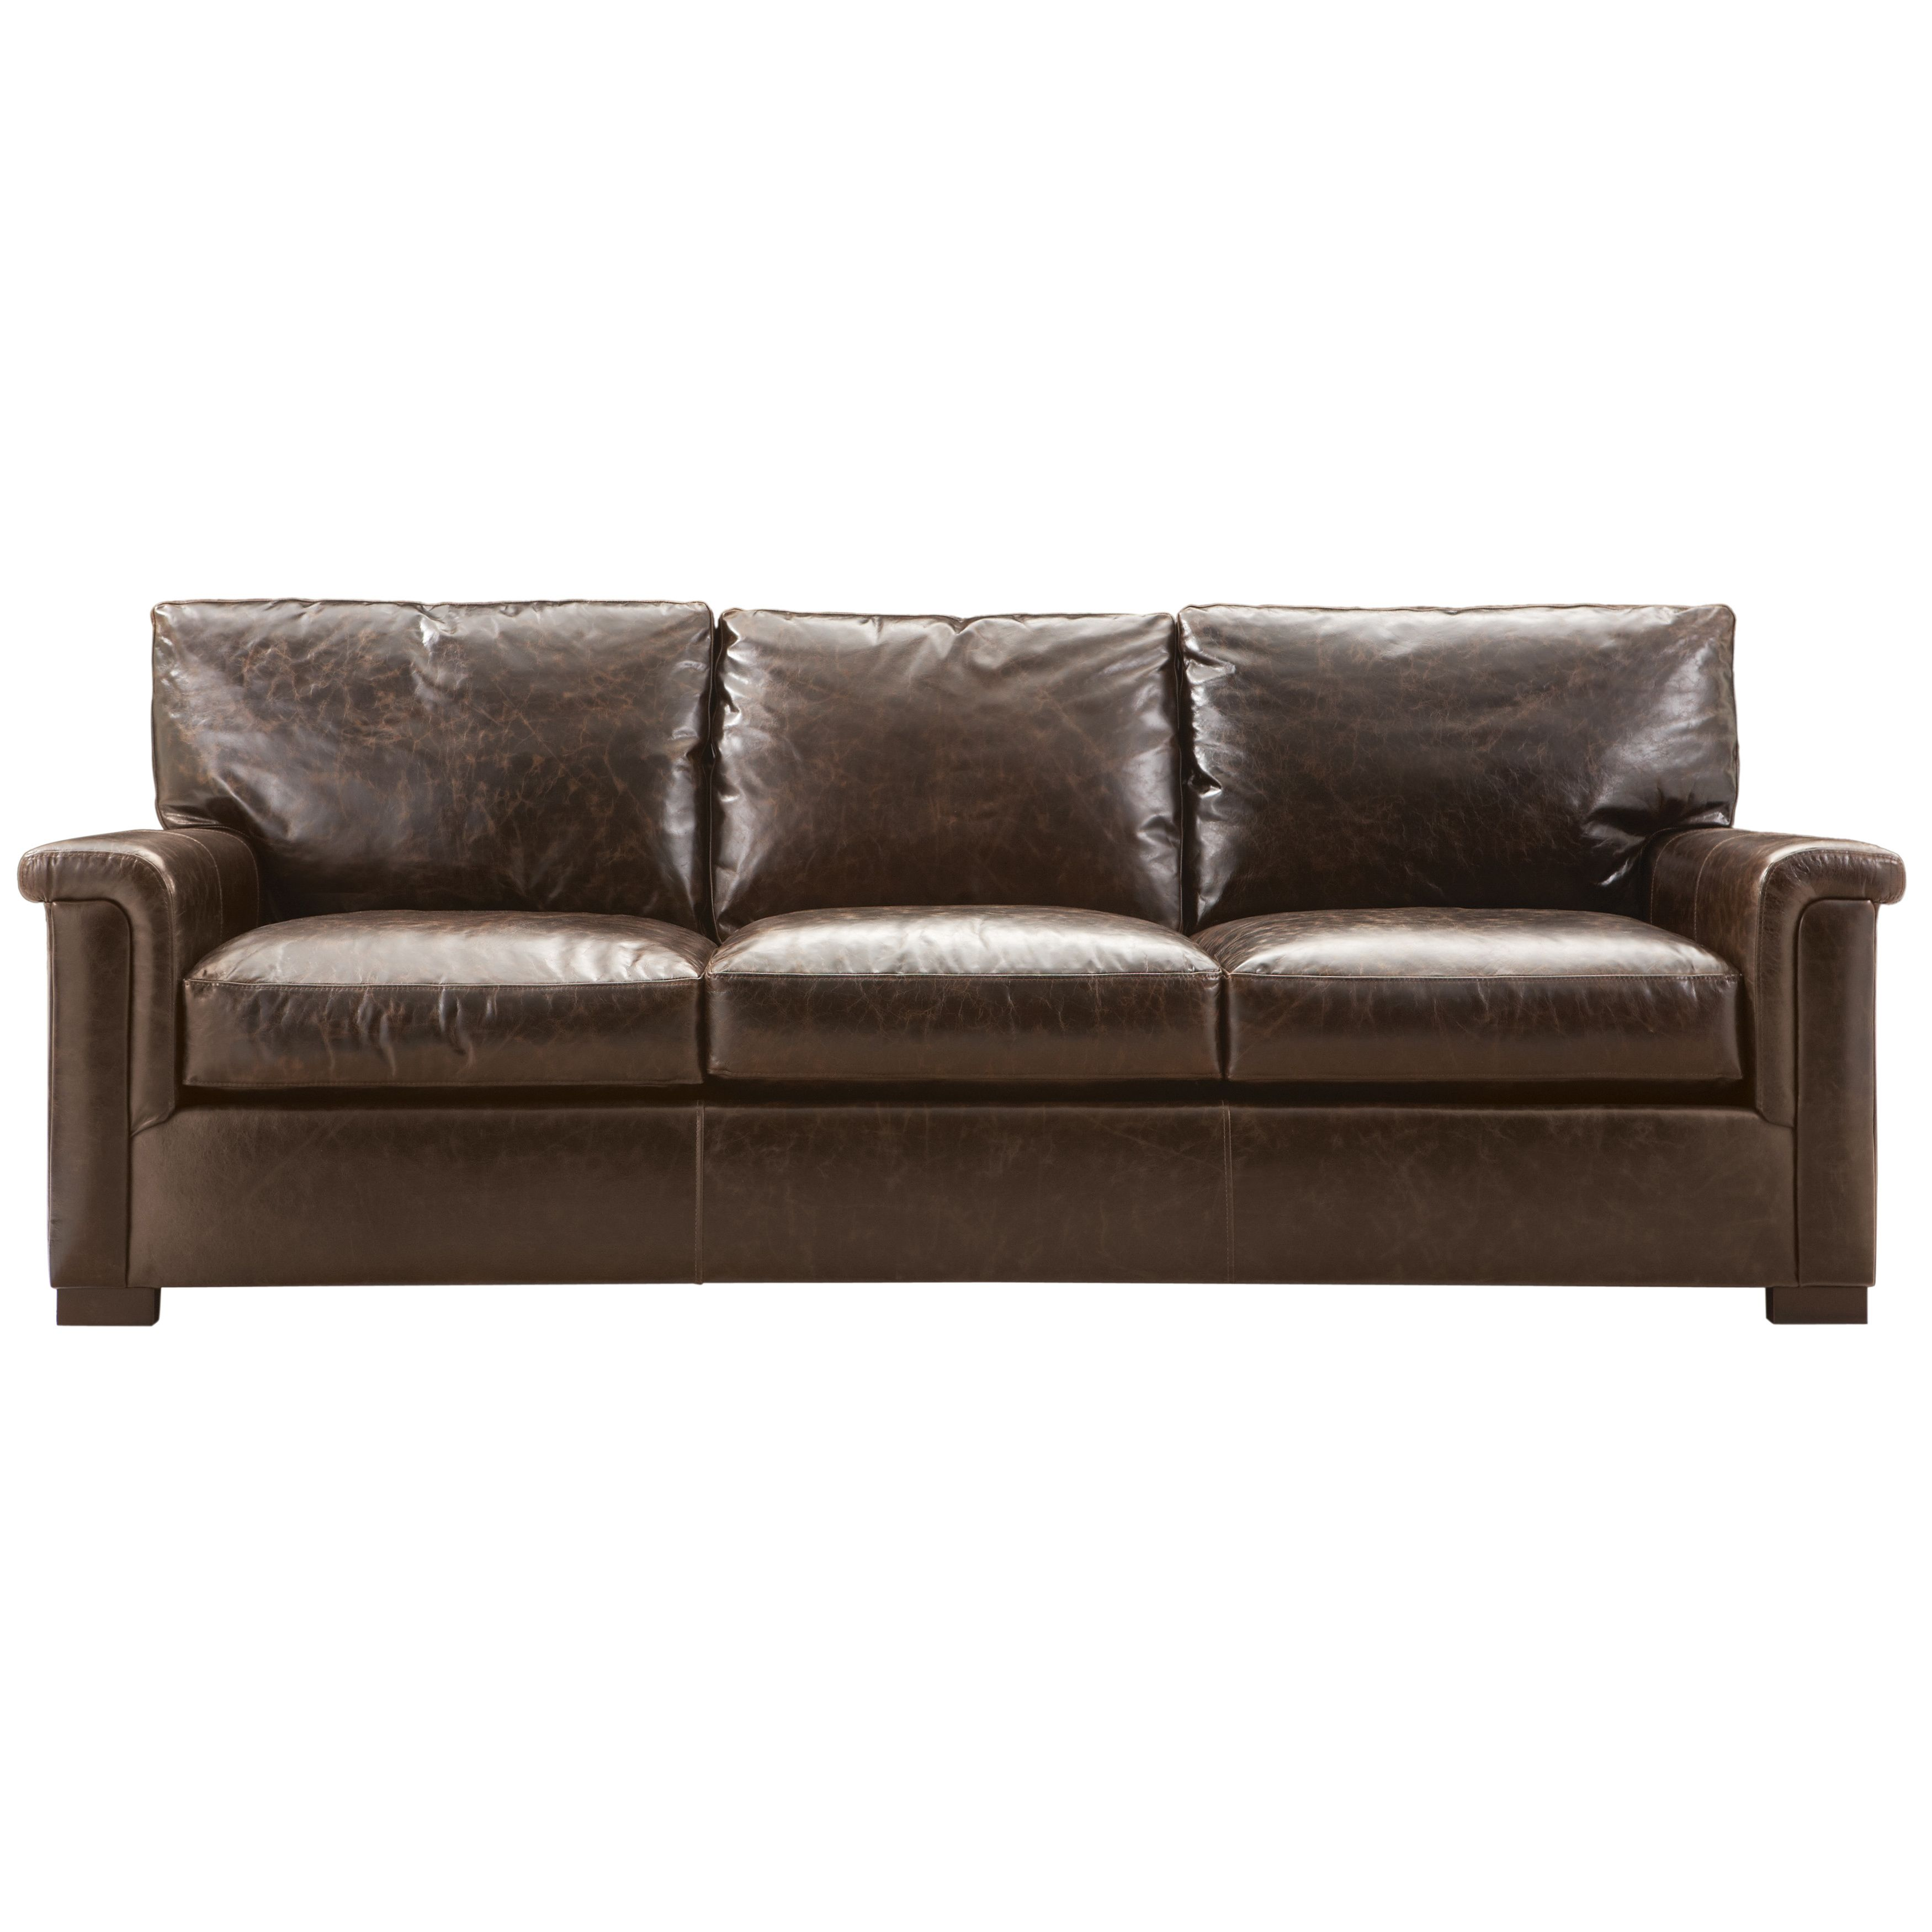 Art Van Foley 96 inch Sofa